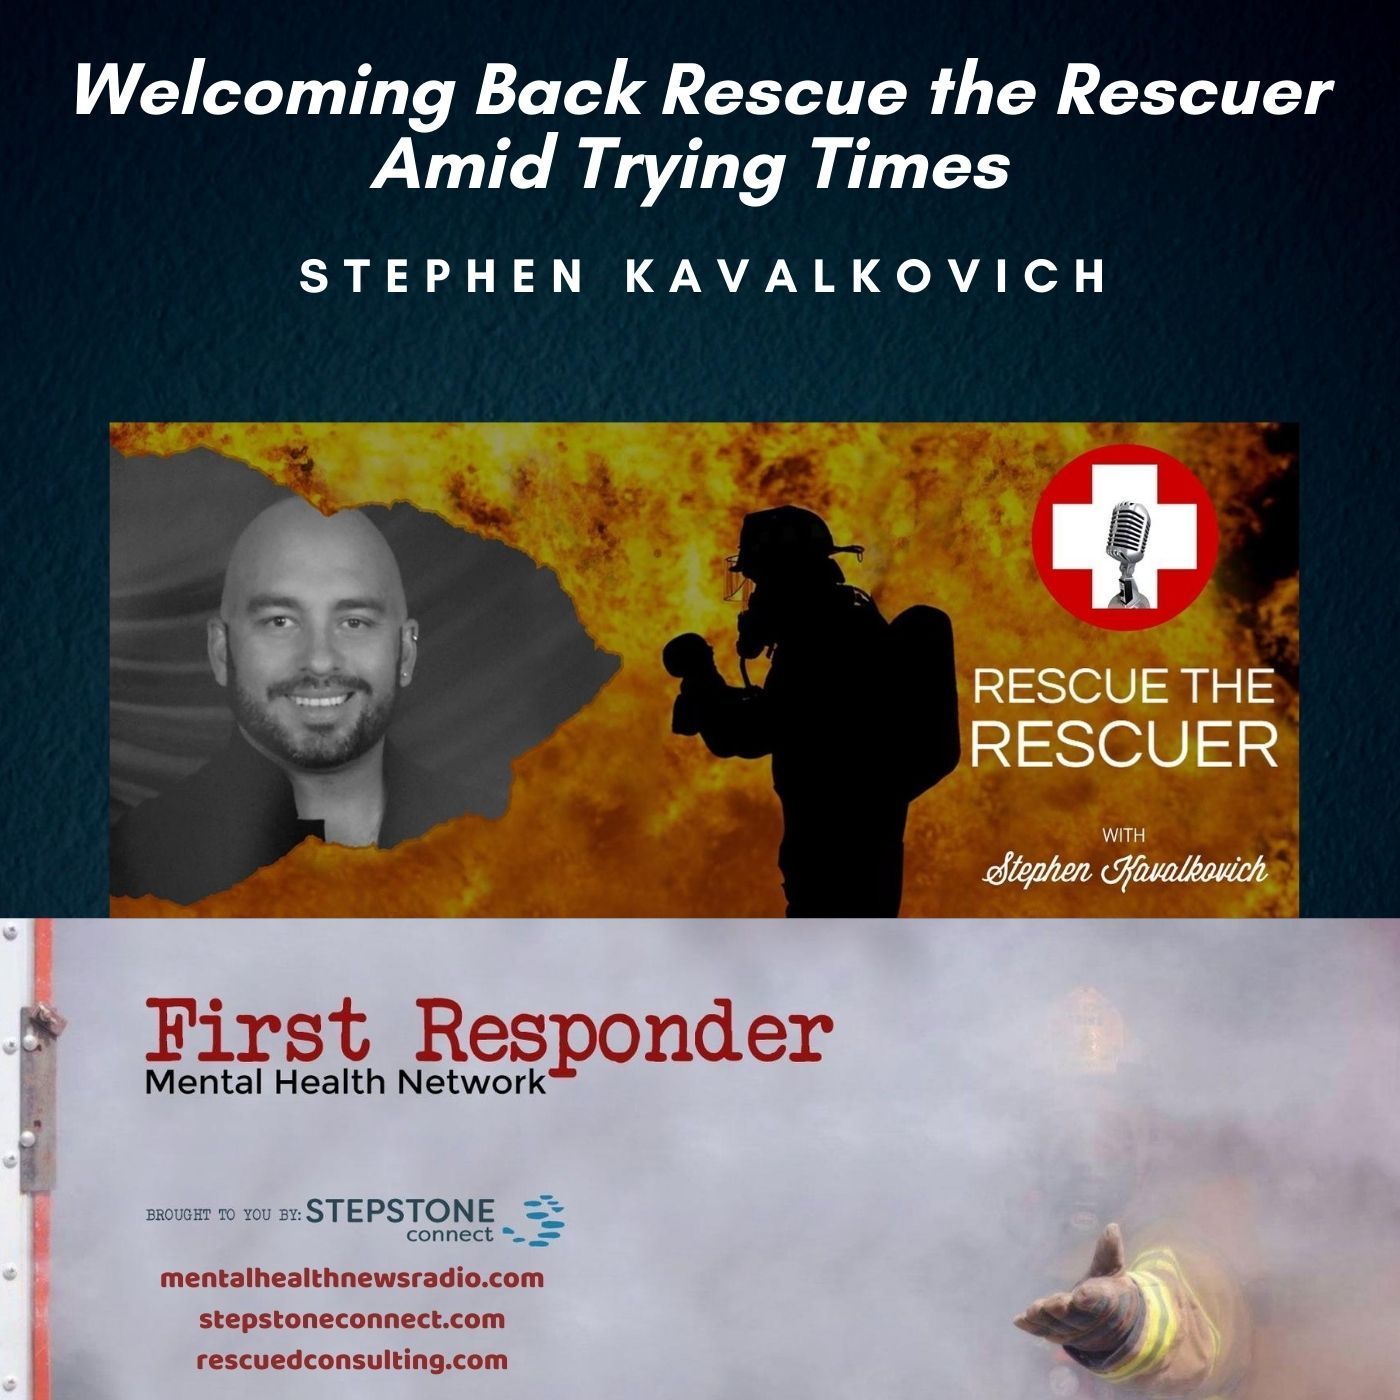 Mental Health News Radio - Welcoming Back Rescue the Rescuer Amid Trying Times